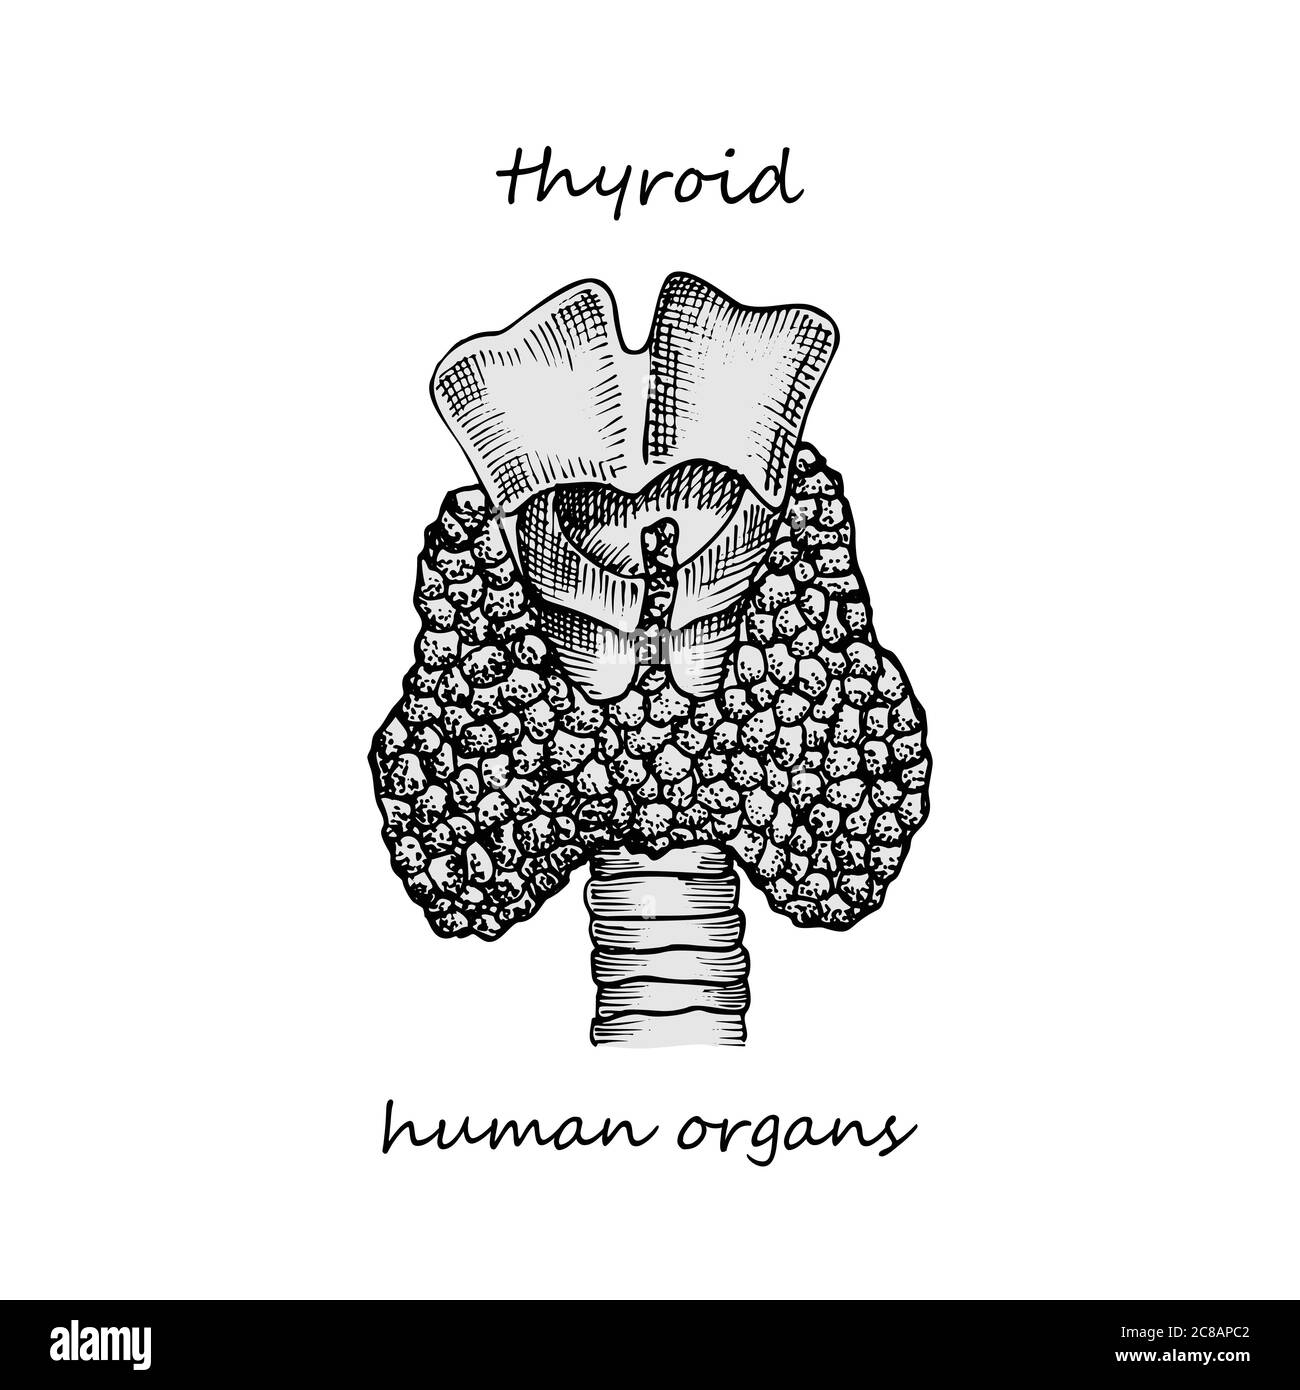 Thyroid Structure And Parts Hand Drawn Icon Isolated On White